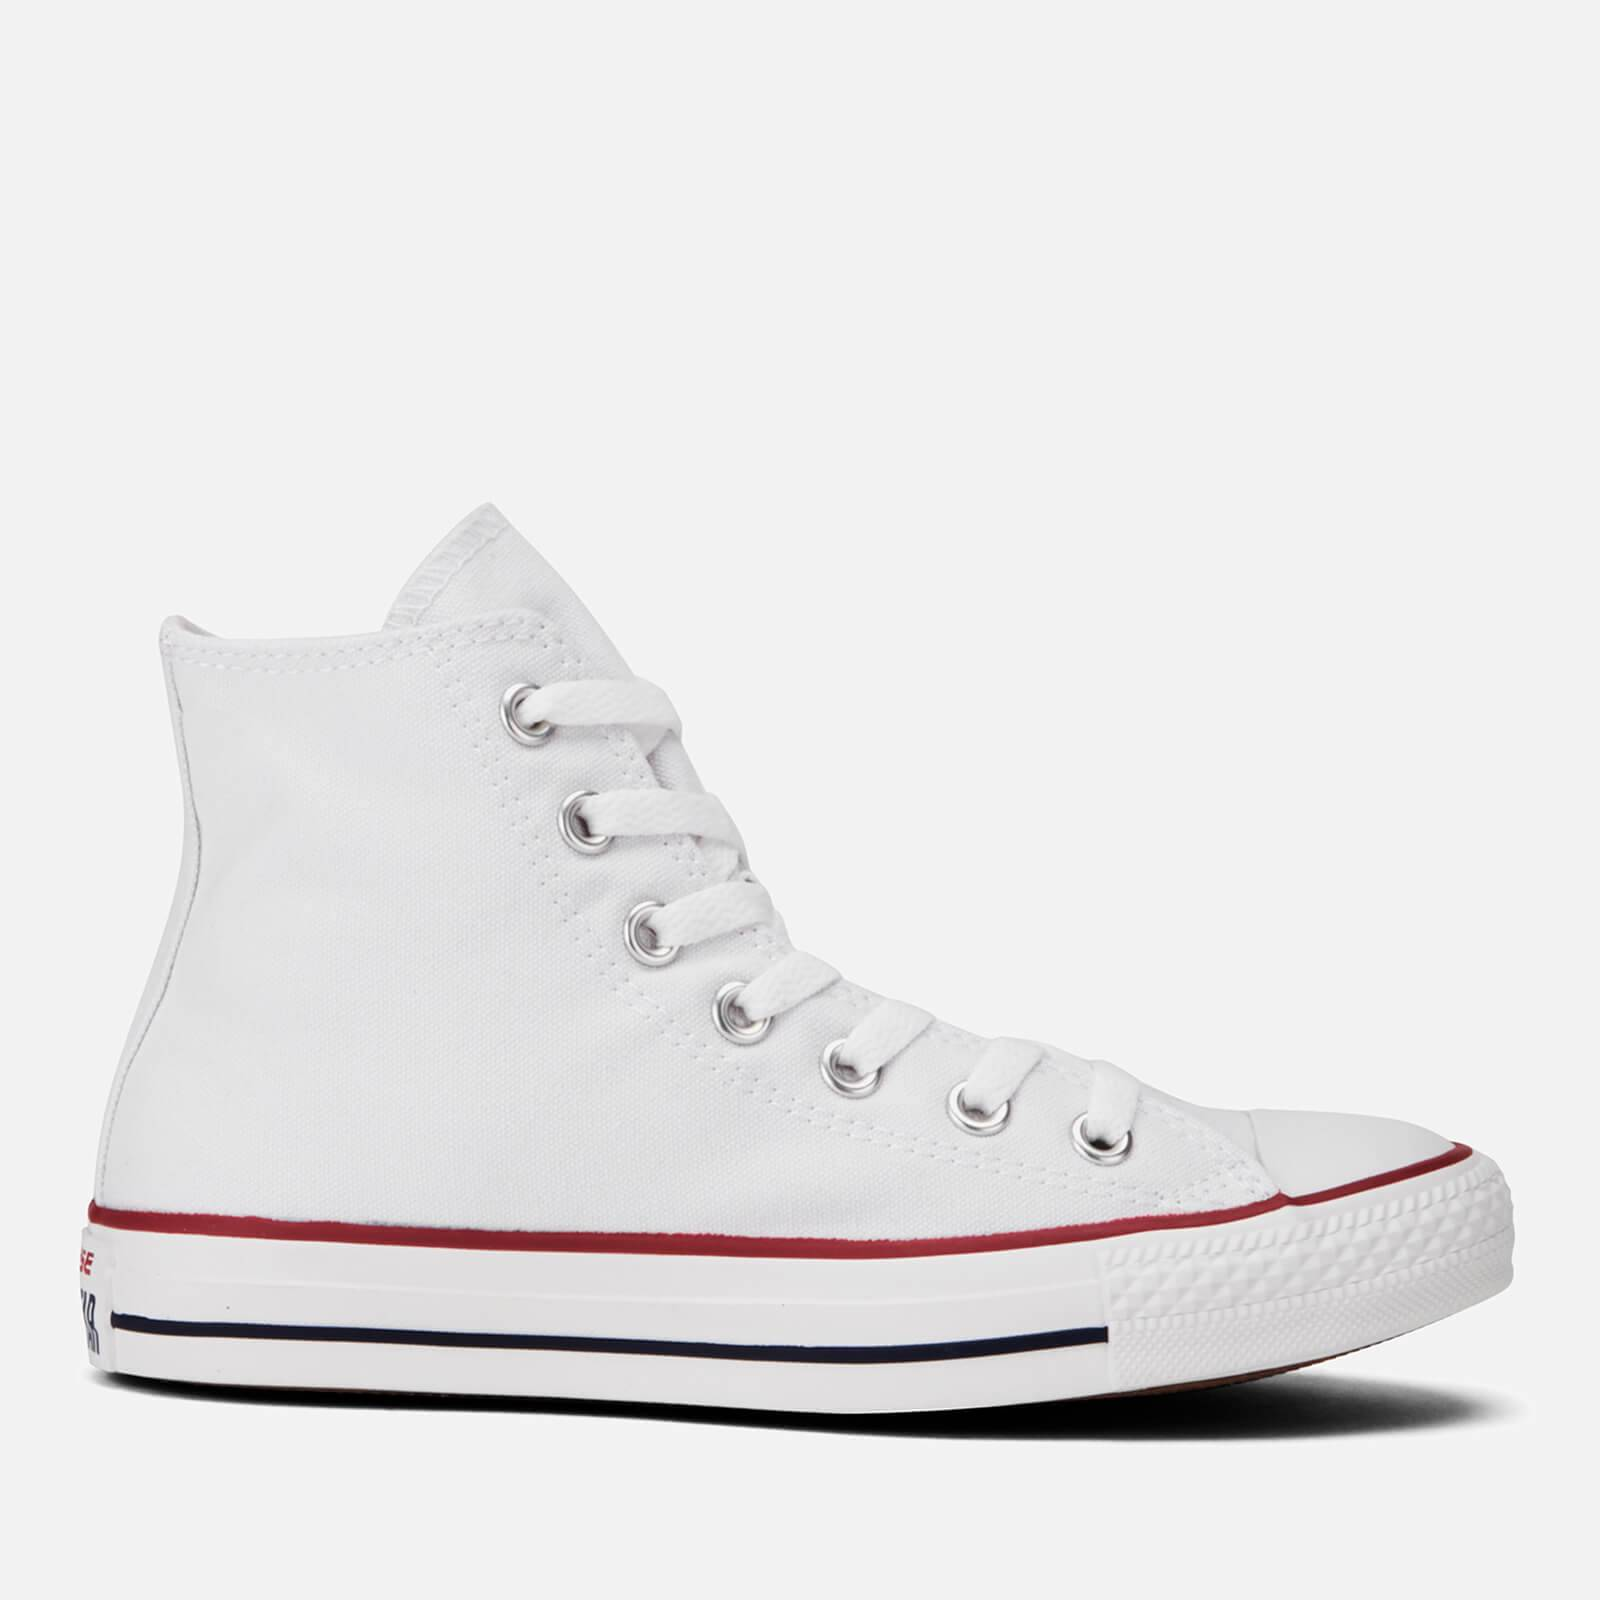 Converse Chuck Taylor All Star Hi-Top Trainers - Optical White - UK 4